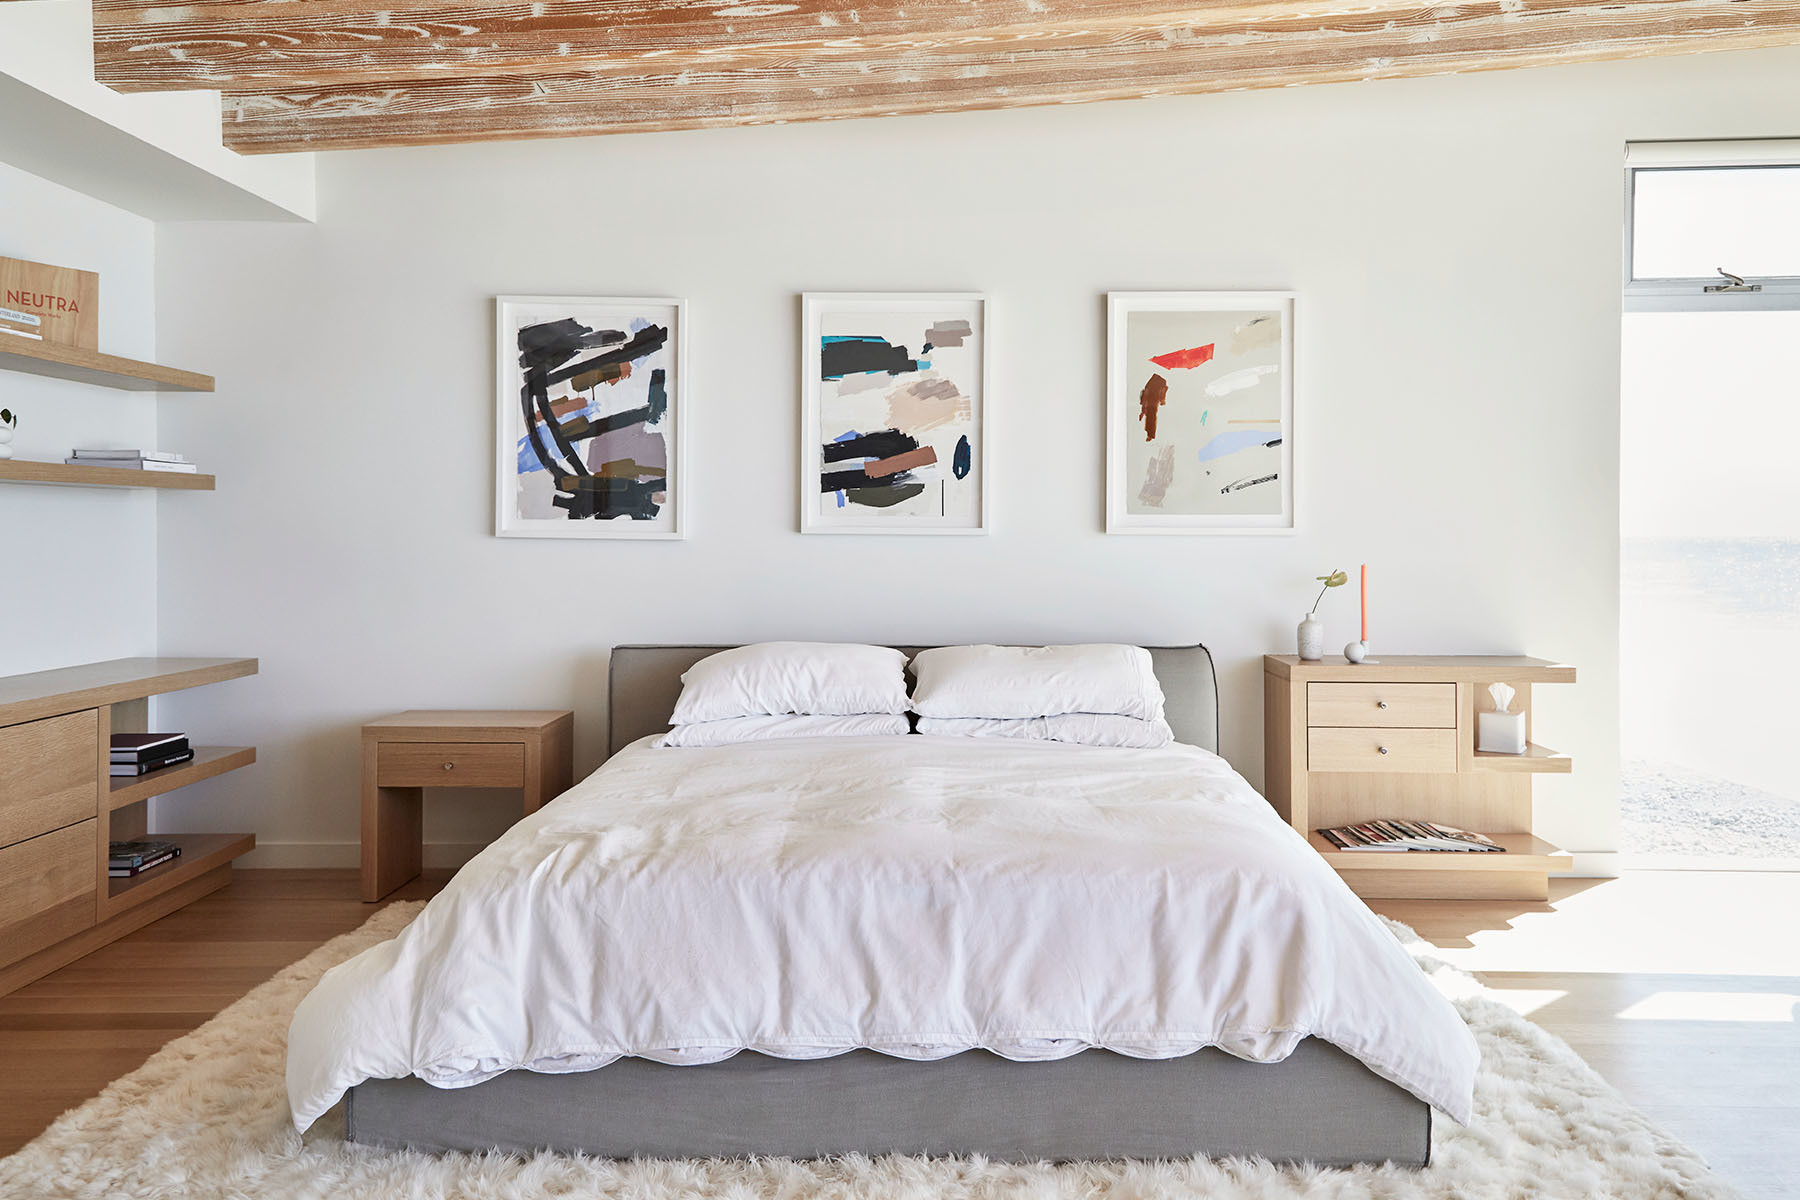 The master bedroom features a king-sized, custom bed, and opens up on to a breathtaking balcony. Custom Bed | Custom Shelving | Restoration Hardware Bedding | Maaari Ceramics | Karina Bania Artwork via Uprise Art.